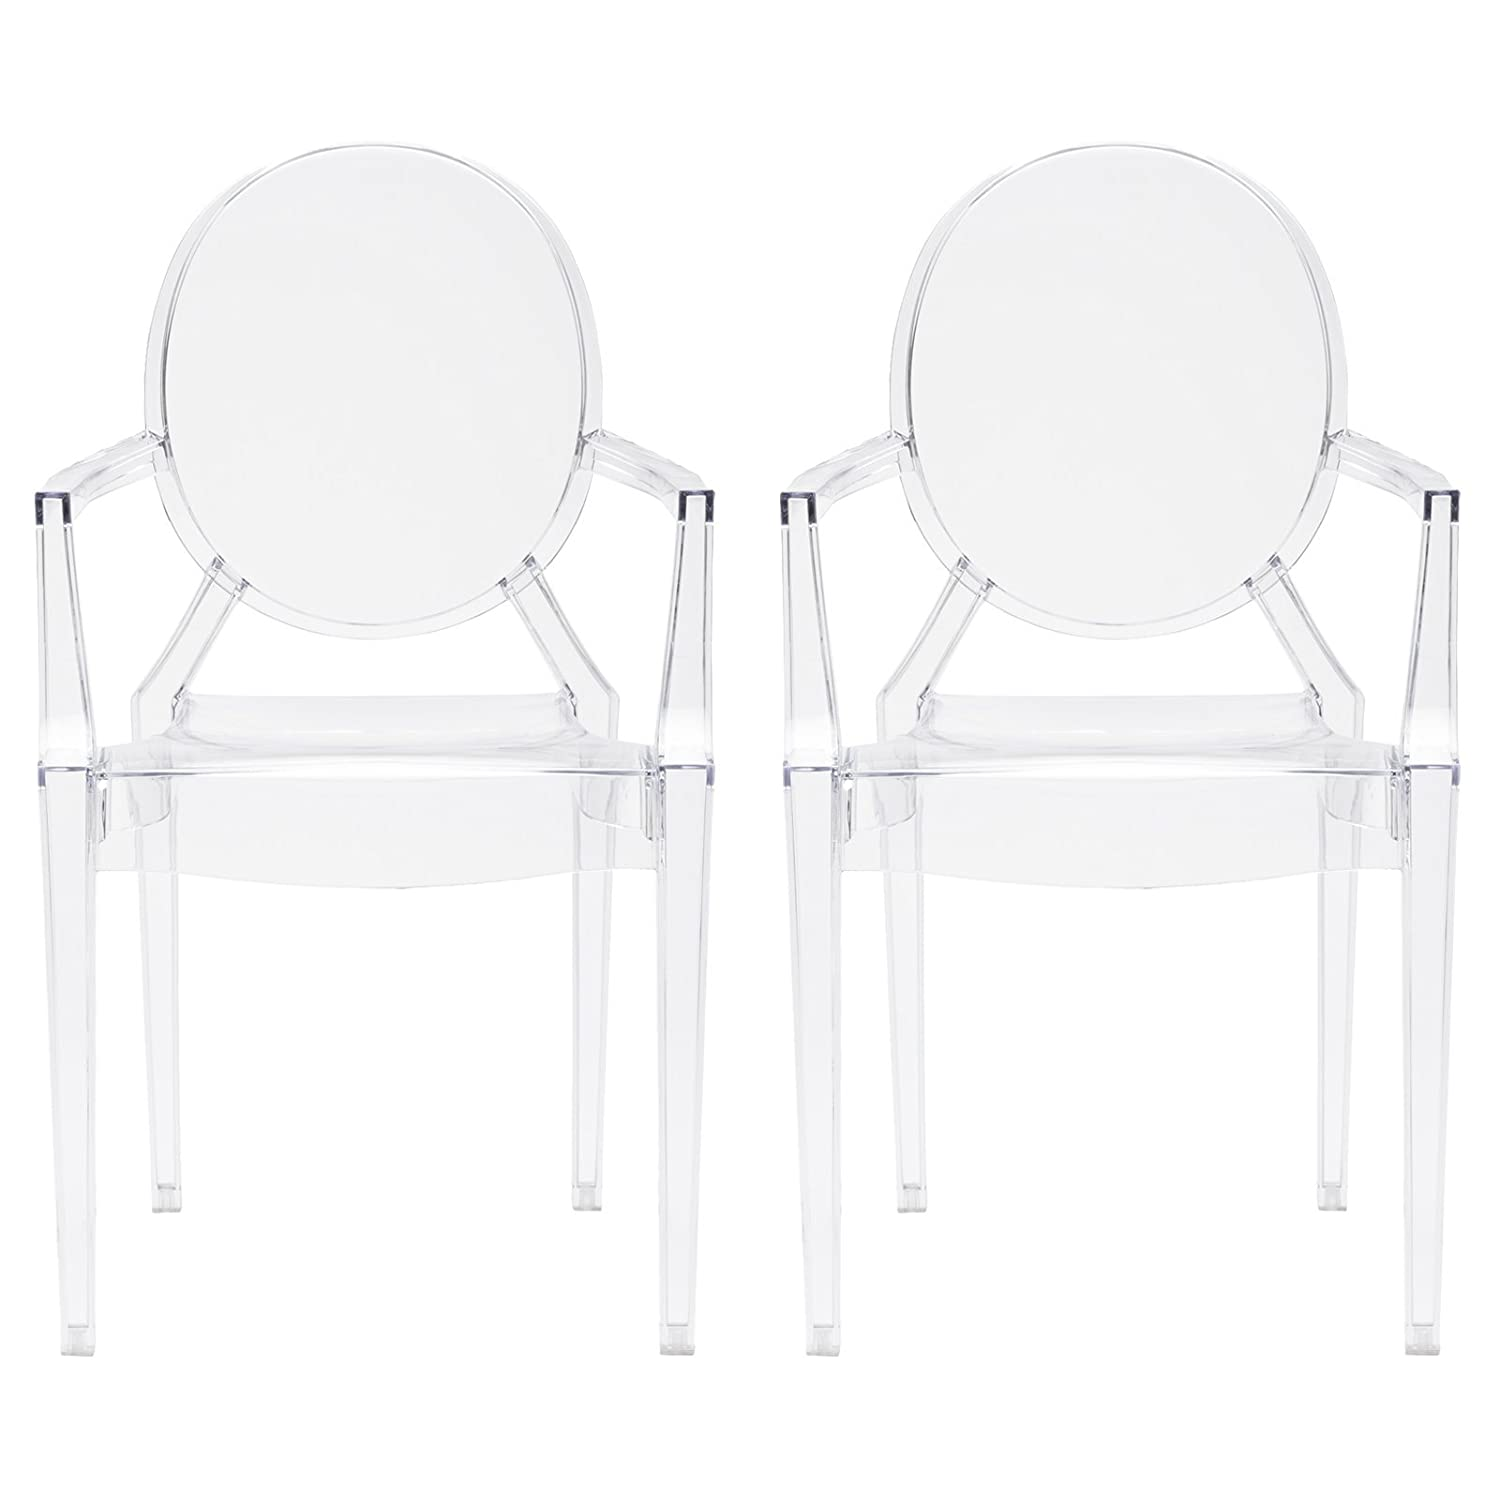 Louis Ghost Chairs. #louischair #modernfrench #ghostchair #louisghostchair 3modernclearchair #acrylicchair